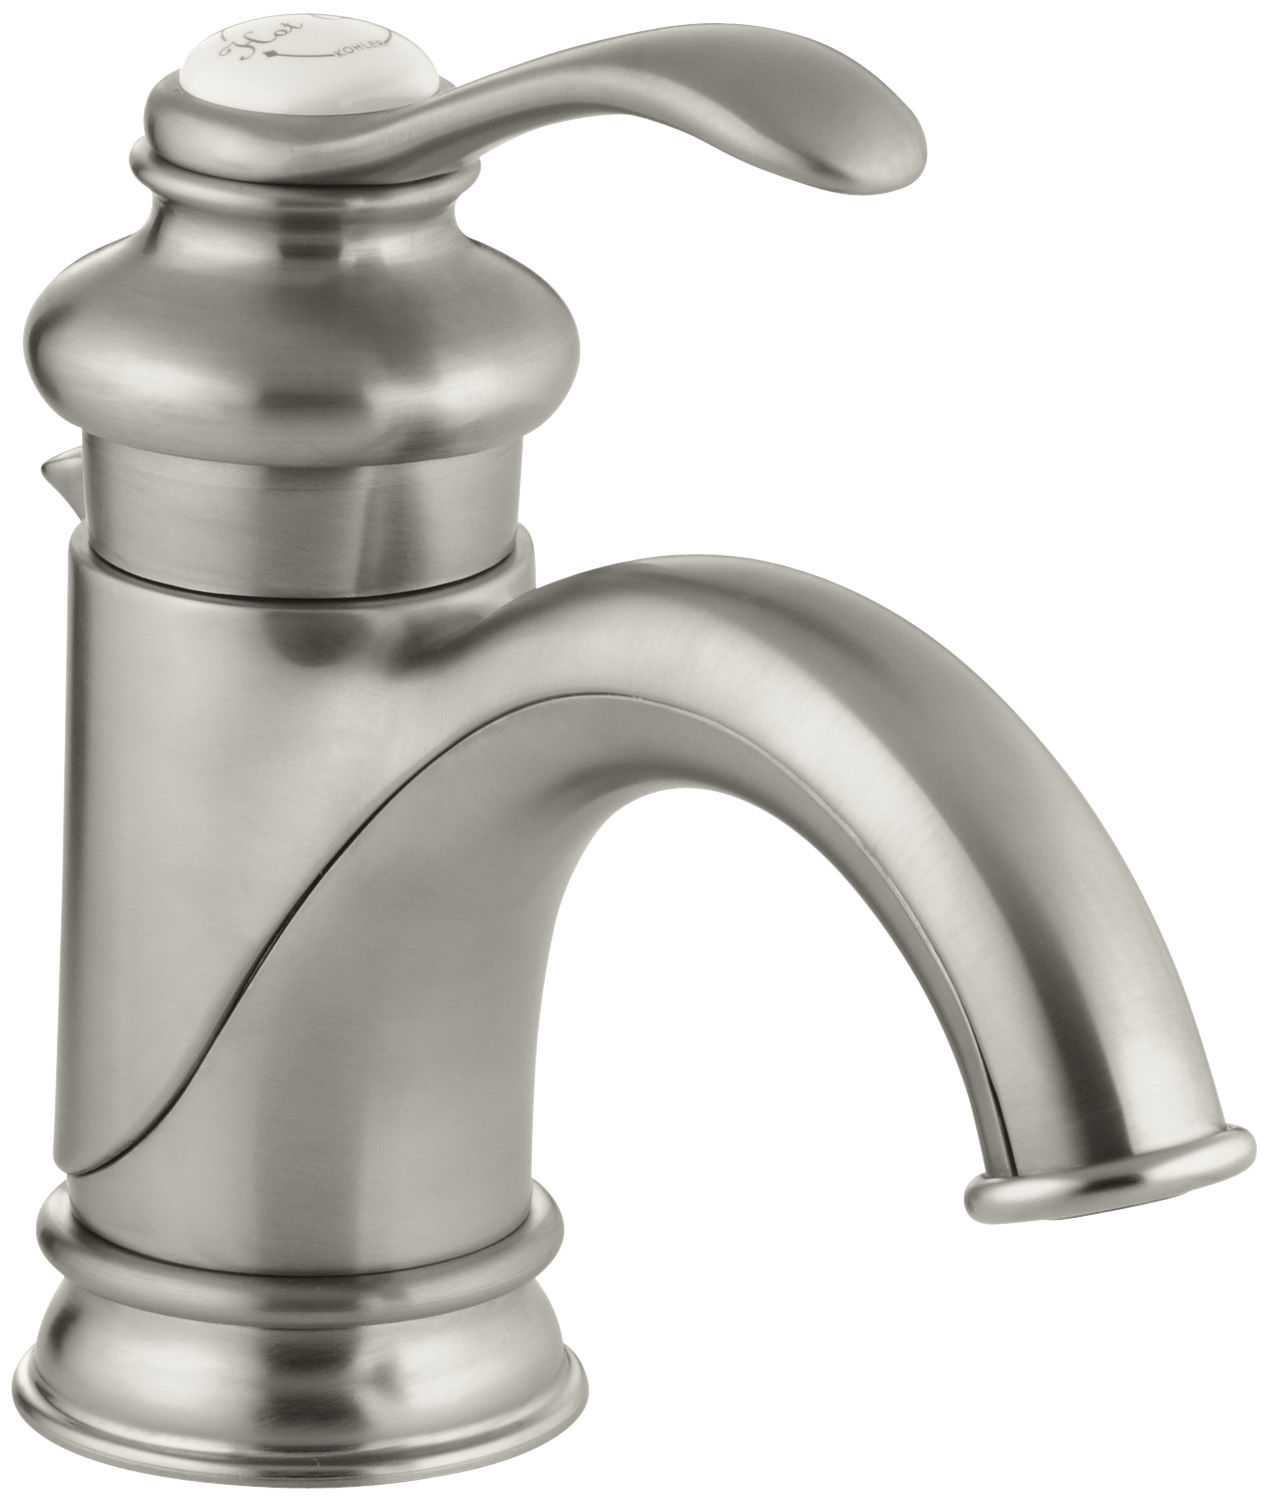 Kohler K-12182-BN Brushed Nickel Fairfax Single Hole Bathroom Faucet ...